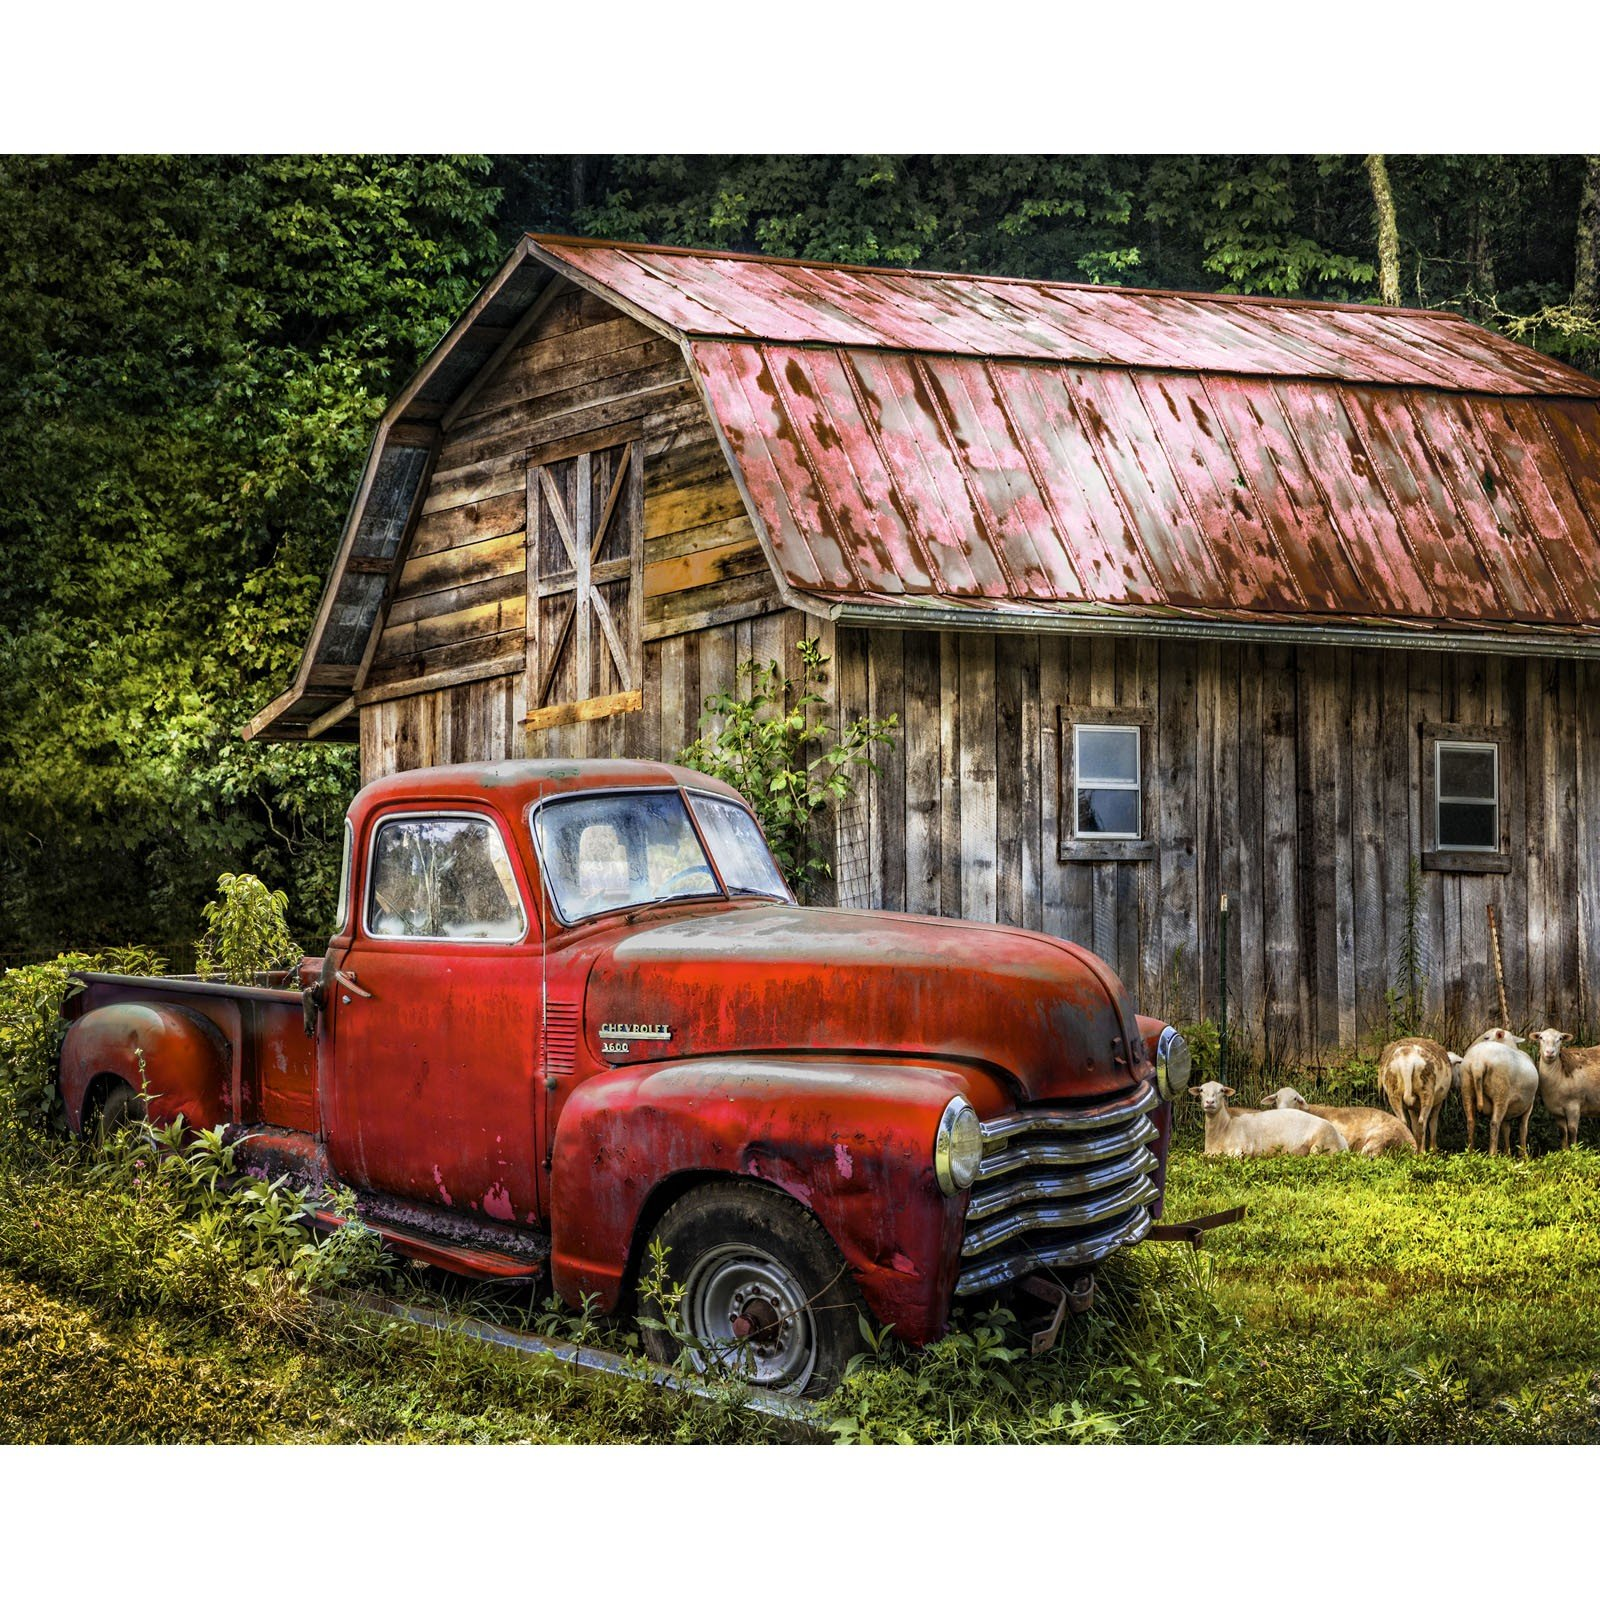 Truck at the Barn<br/>Four Seasons 3716-8C-2